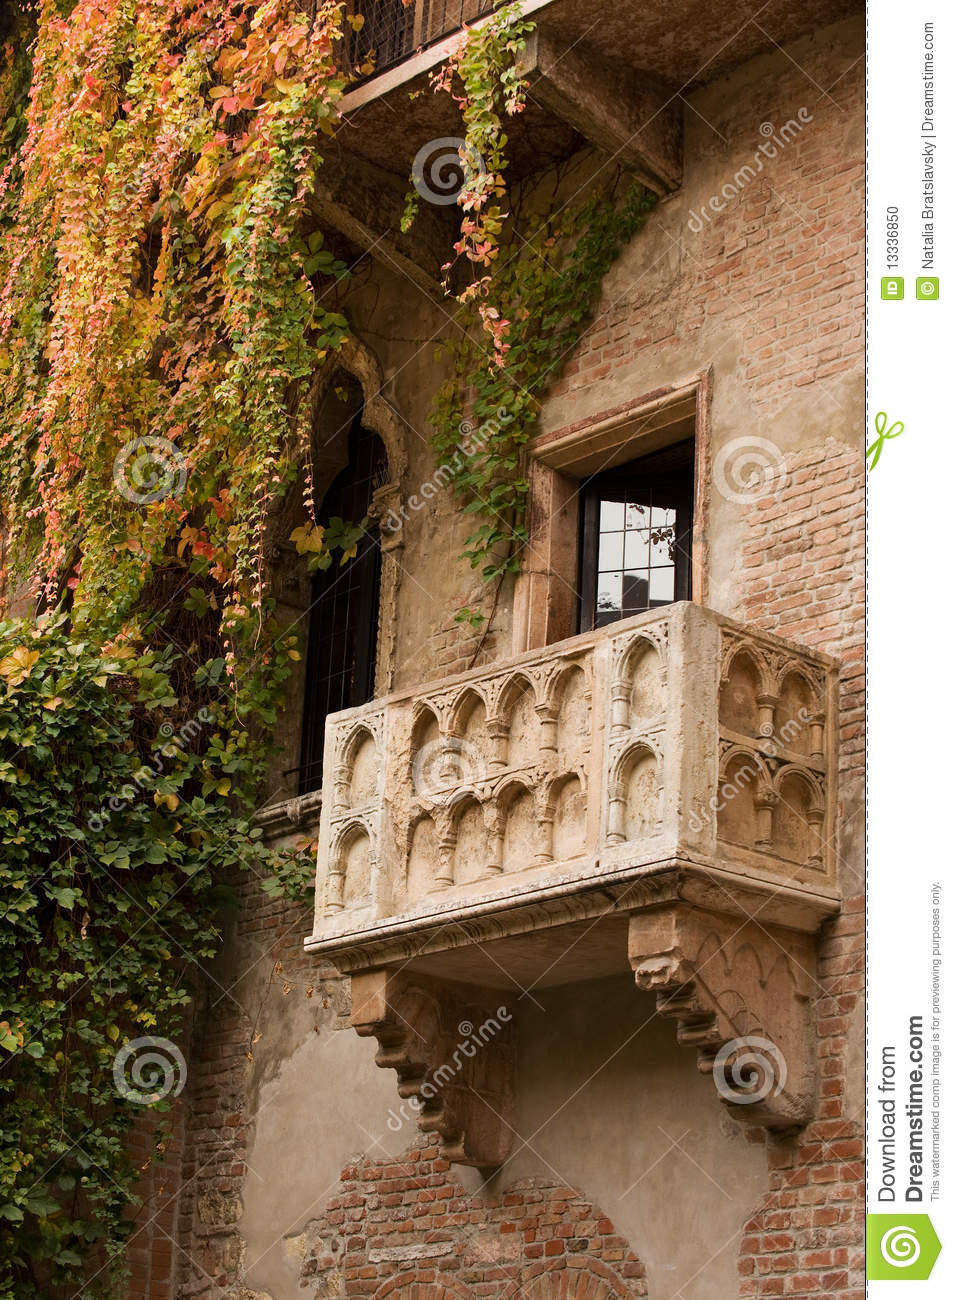 Juliets Balcony Stock Photo Image Of Verona Romantic